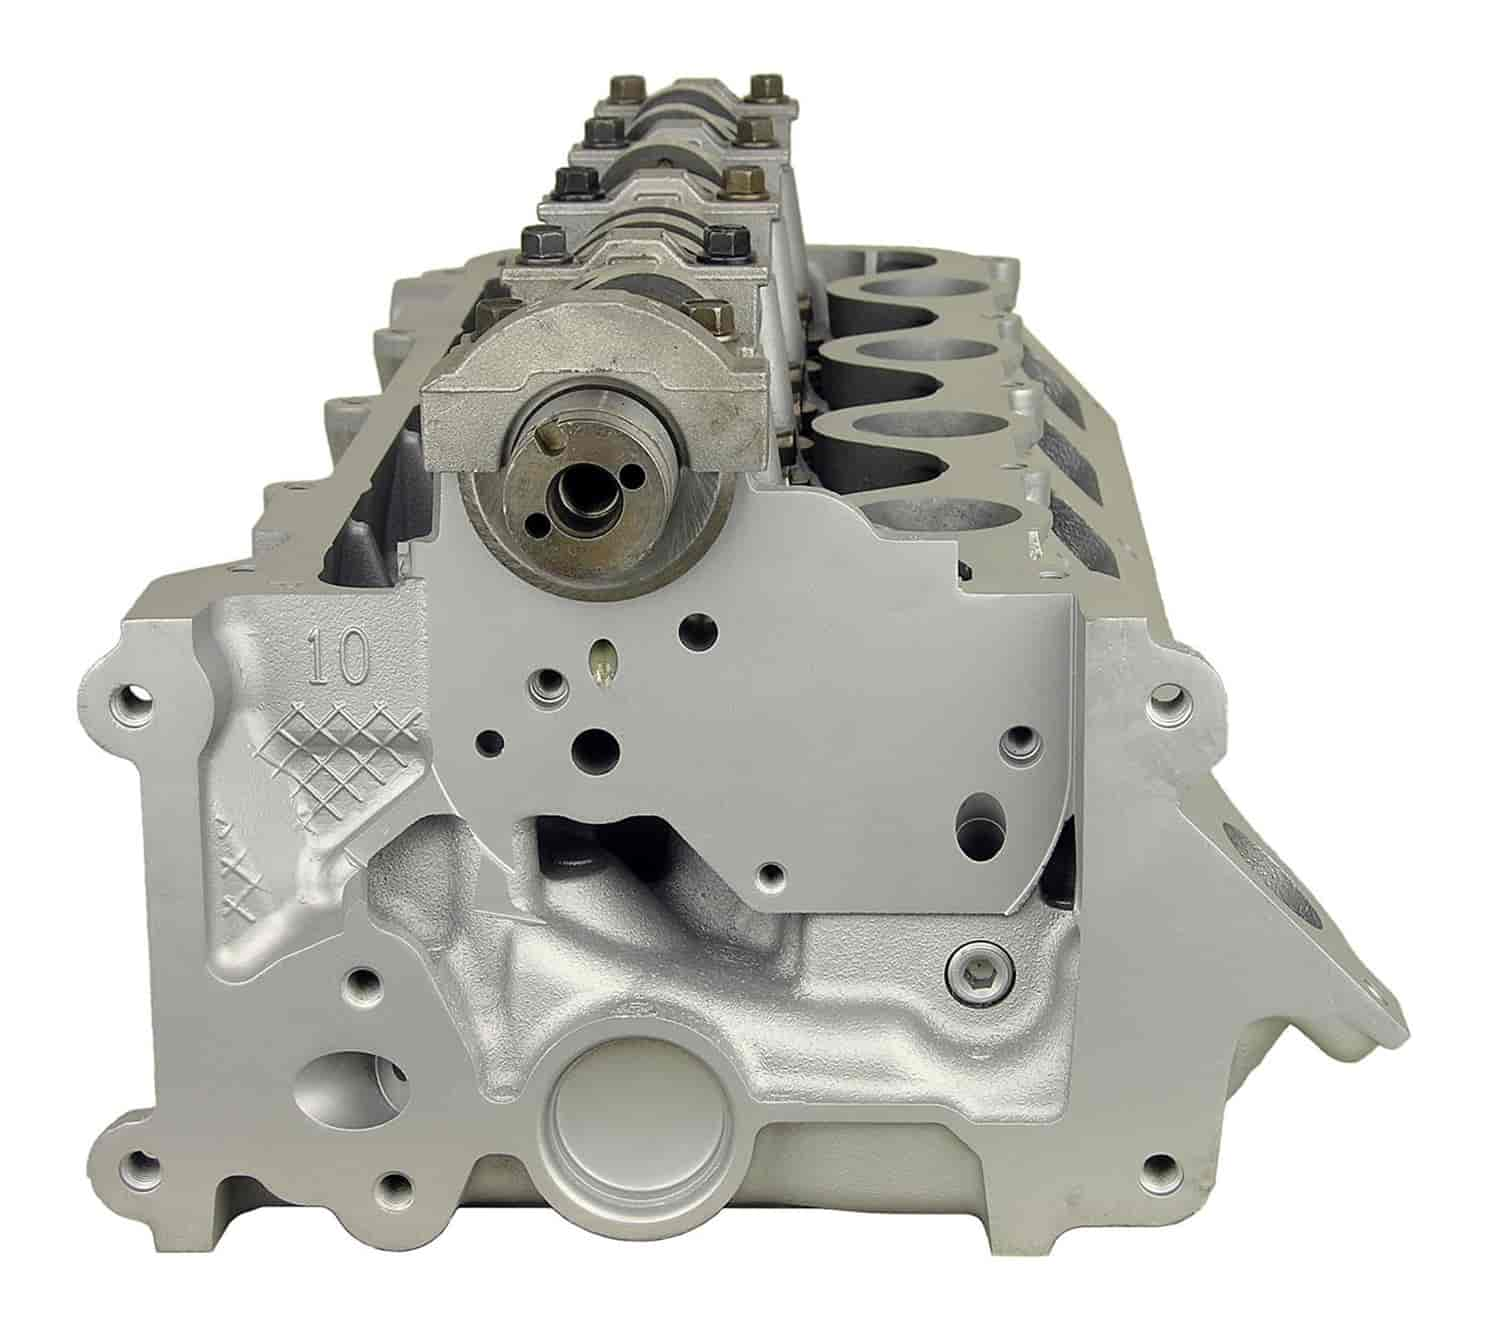 Ford 4 6 Cylinder Head Replacement: ATK Engines 2FDVR: Remanufactured Cylinder Head For 2004